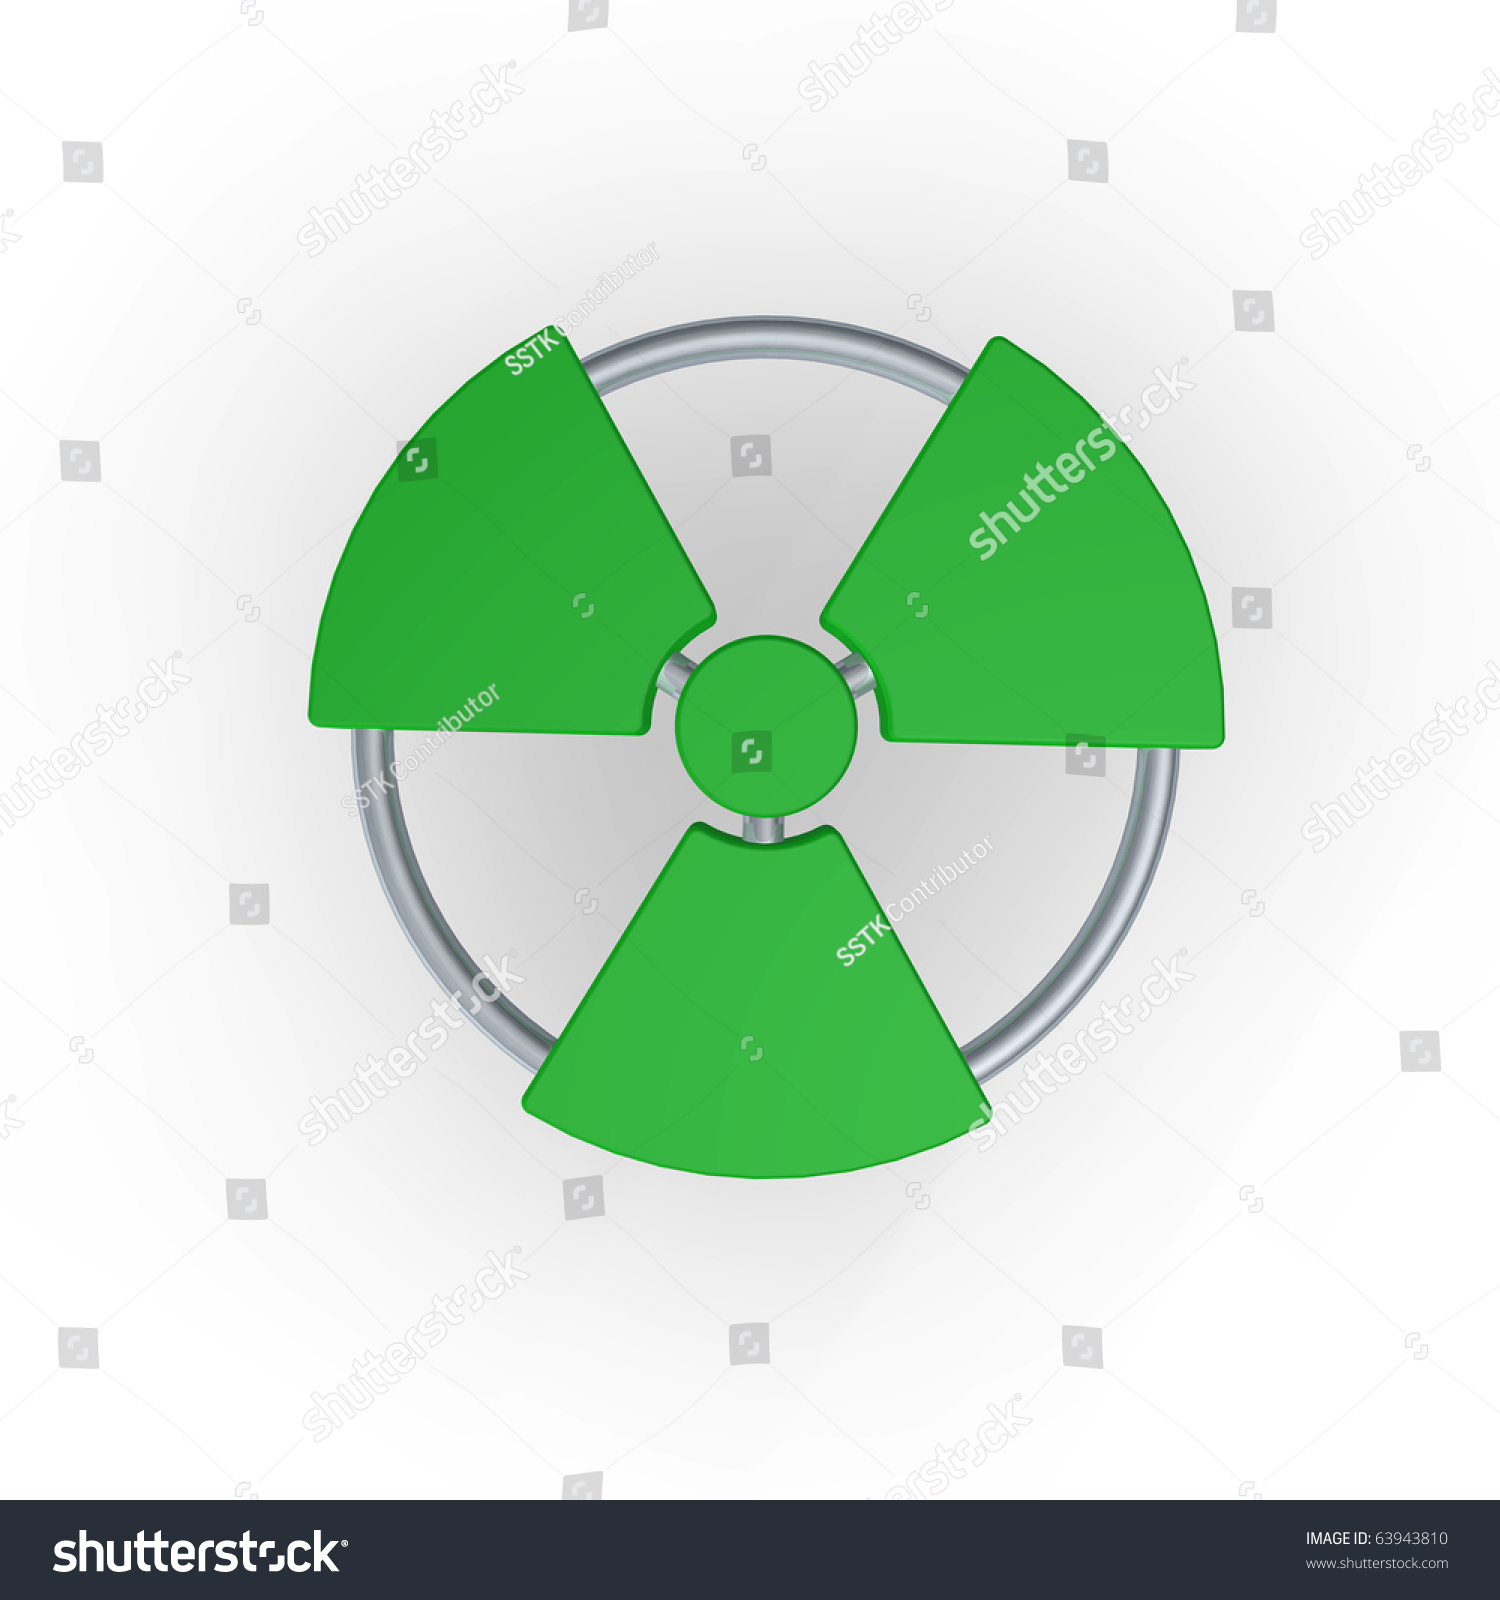 Green Nuclear Symbol - 3d Illustration - 63943810 ...